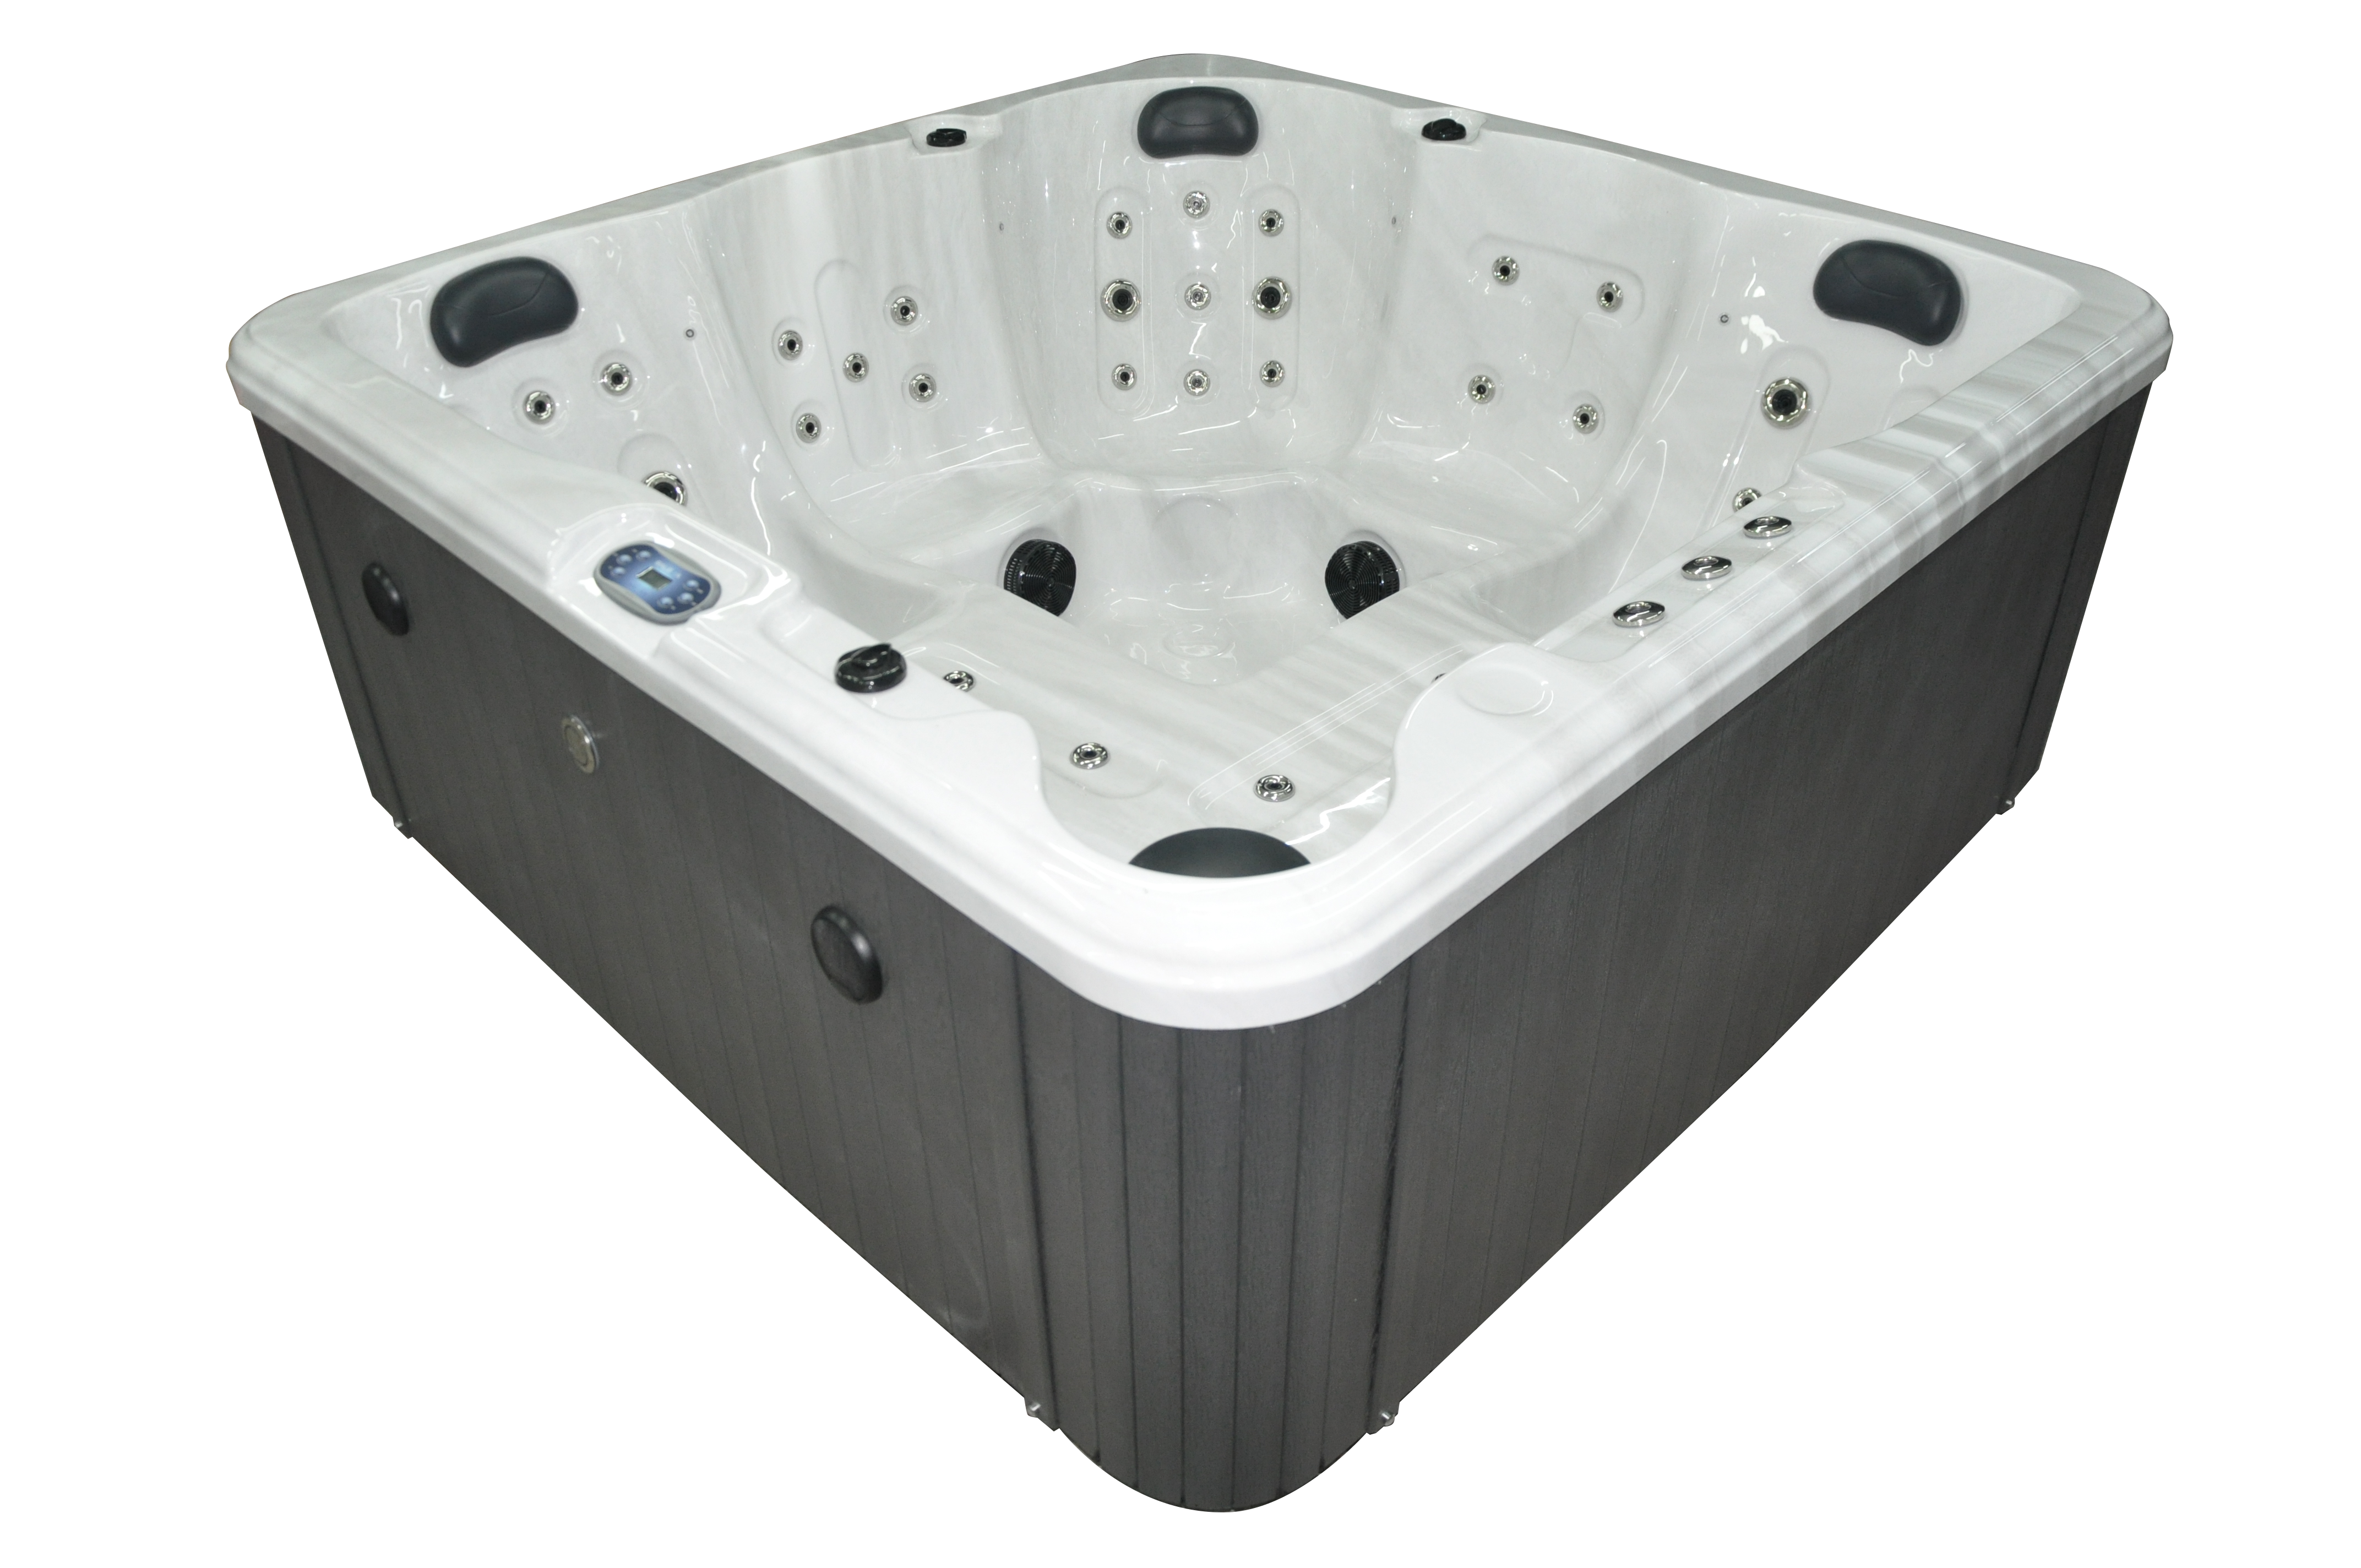 Ivy Beach Blue Whale Spa Uk Owned Hot Tub Manufacturer